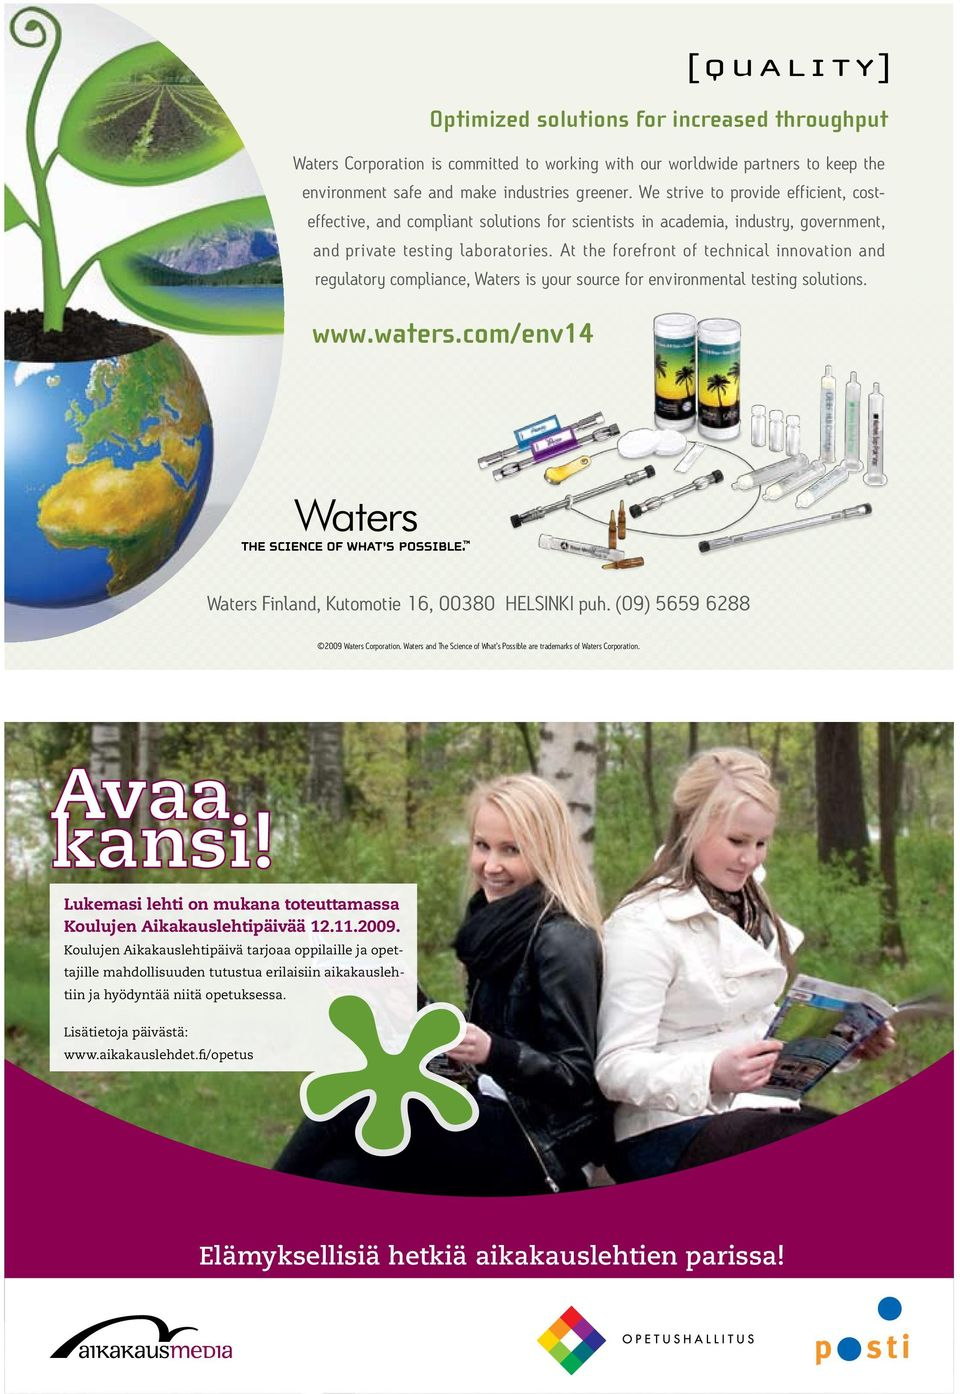 At the forefront of technical innovation and regulatory compliance, Waters is your source for environmental testing solutions. www.waters.com/env14 Waters Finland, Kutomotie 16, 00380 HELSINKI puh.